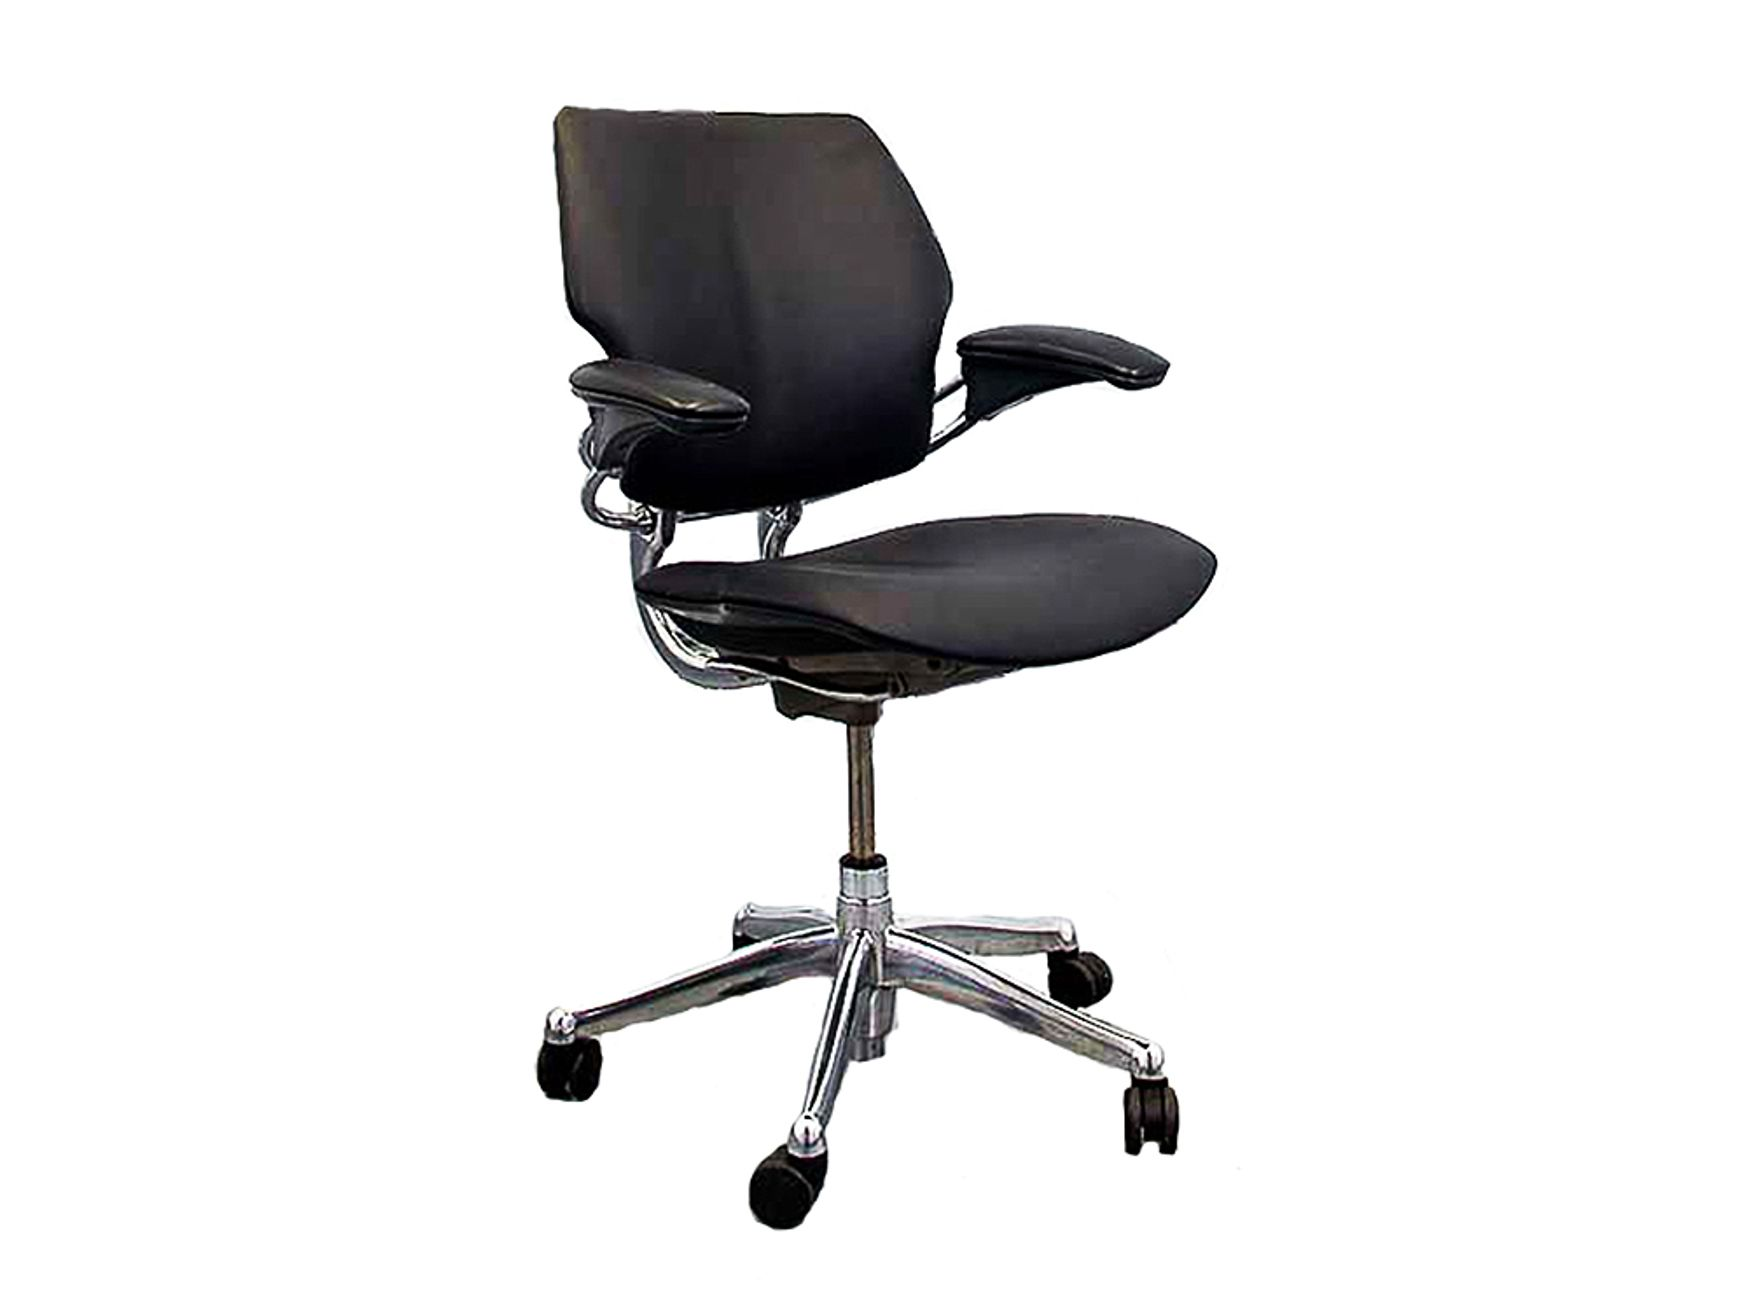 Refurbished Humanscale Freedom Chairs in Fabric with Aluminium Frame